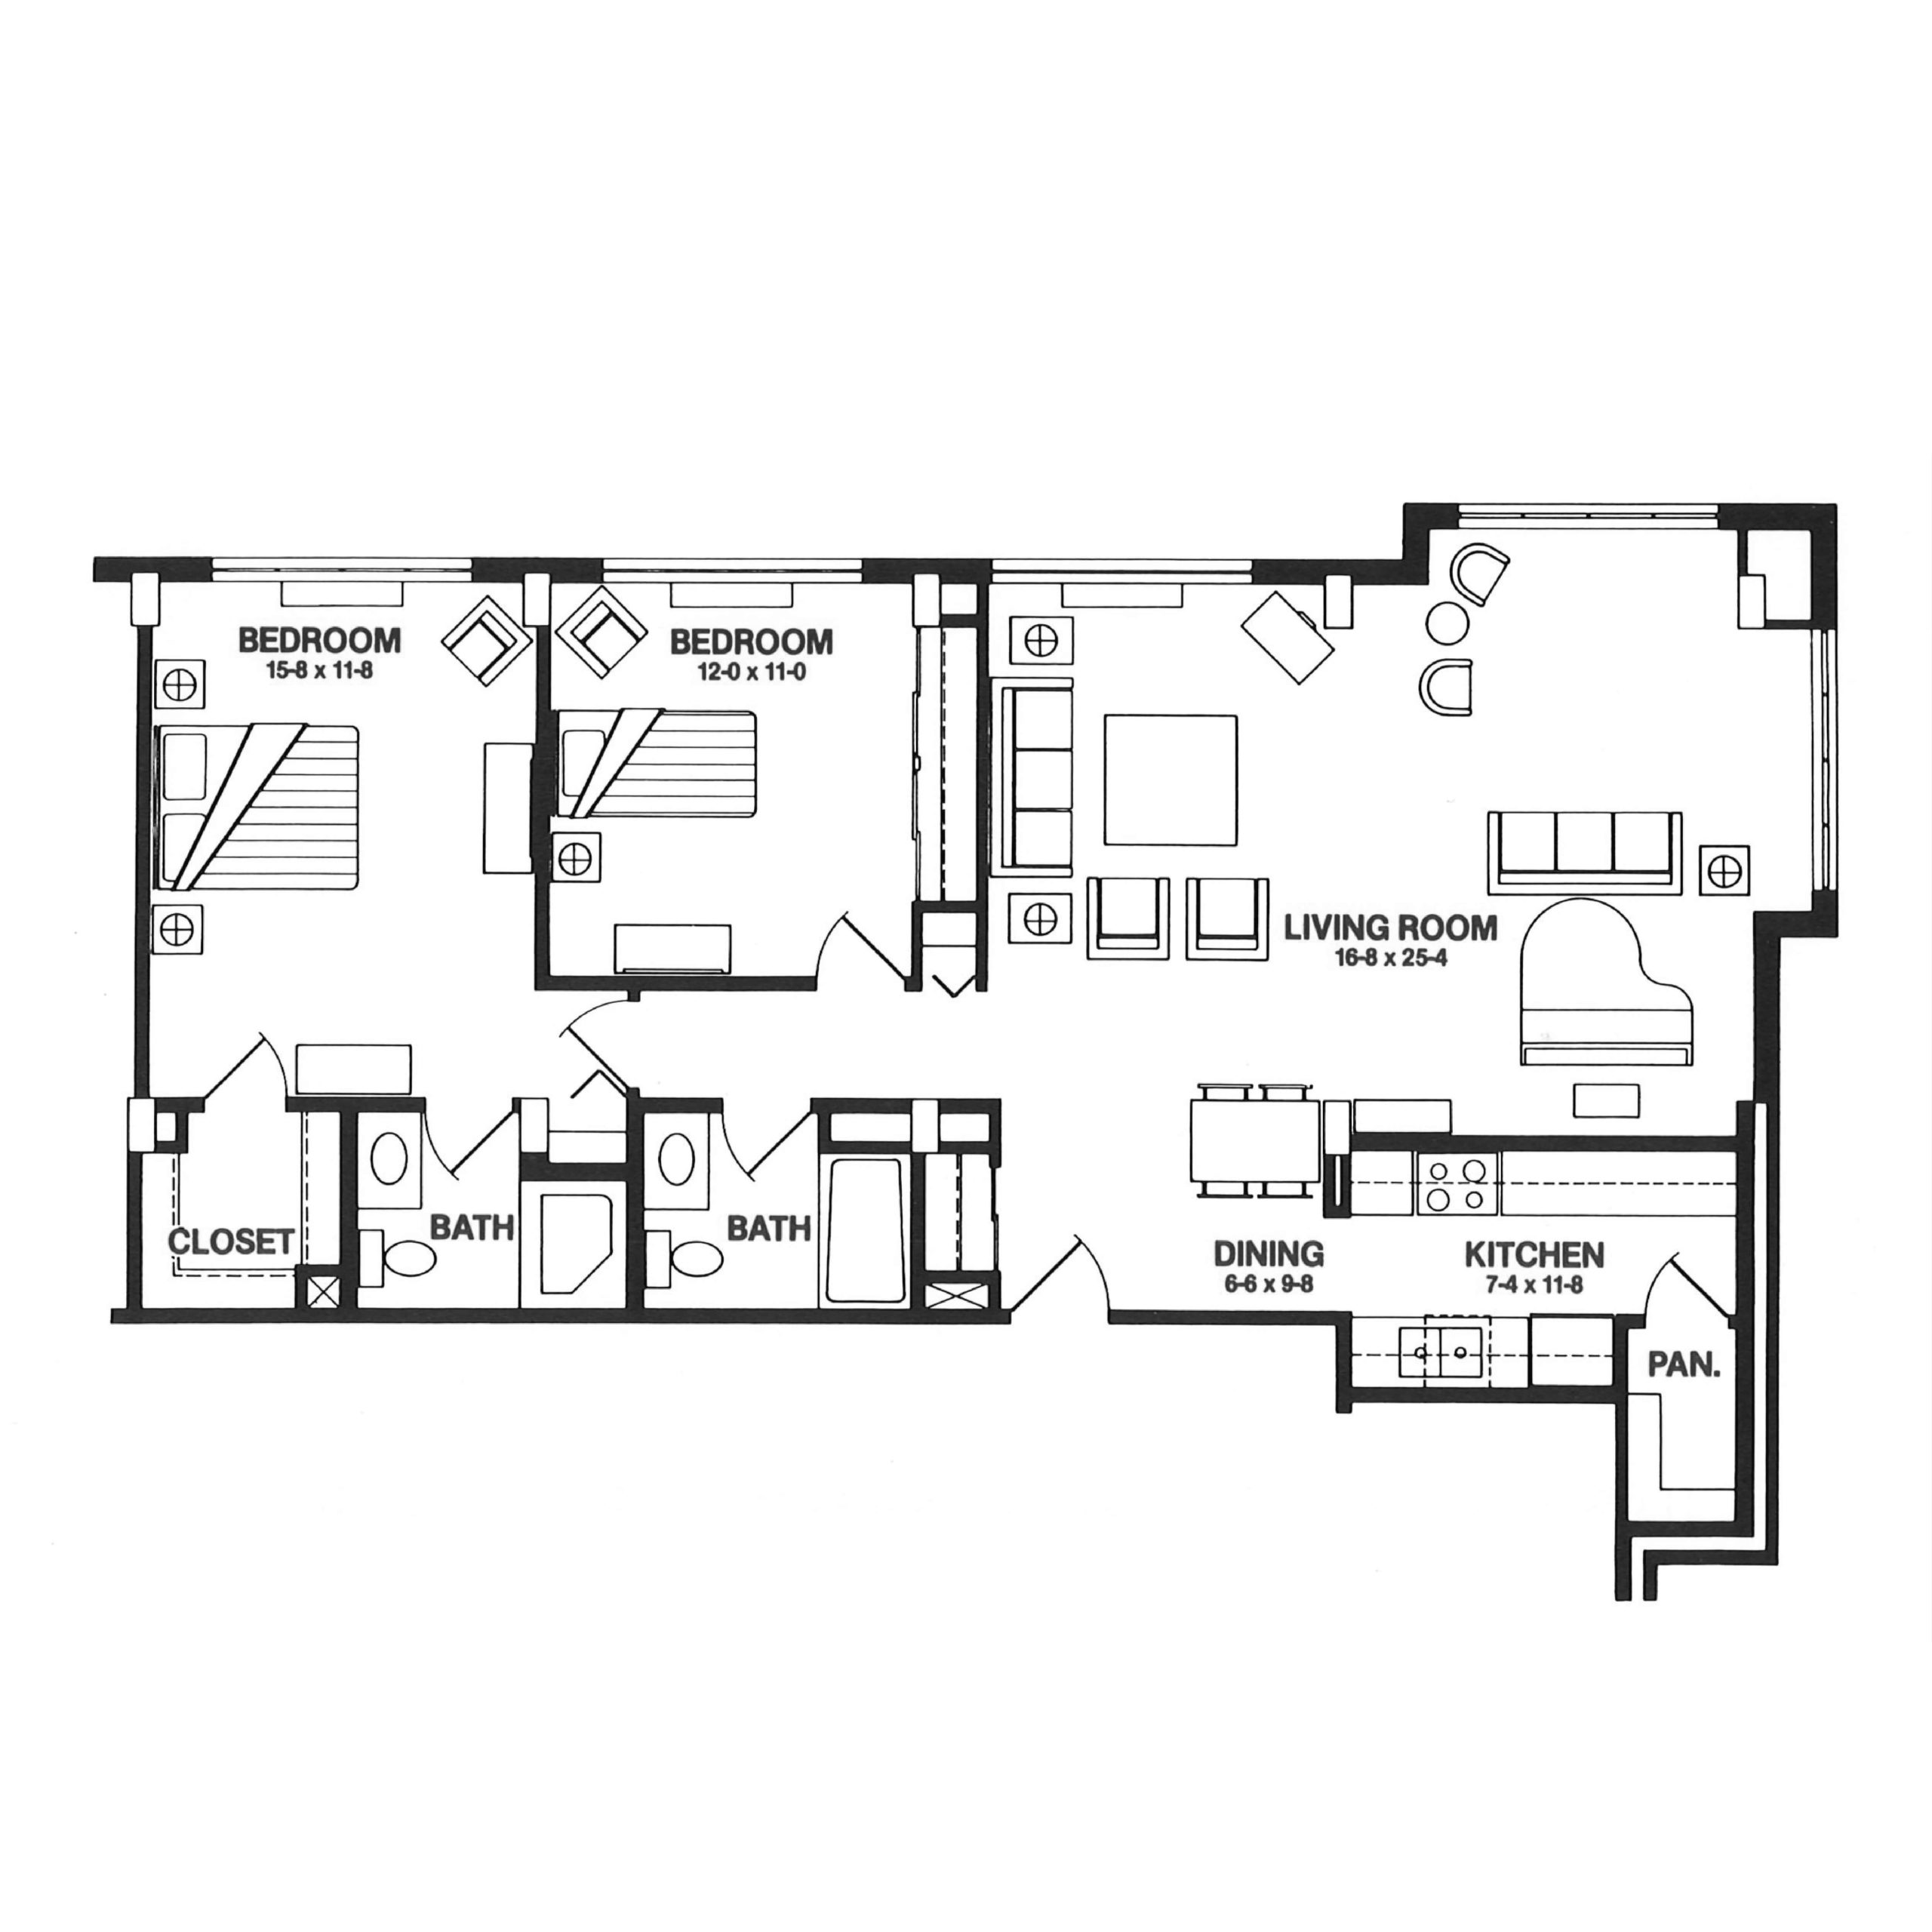 The Spires floor plan blueprint